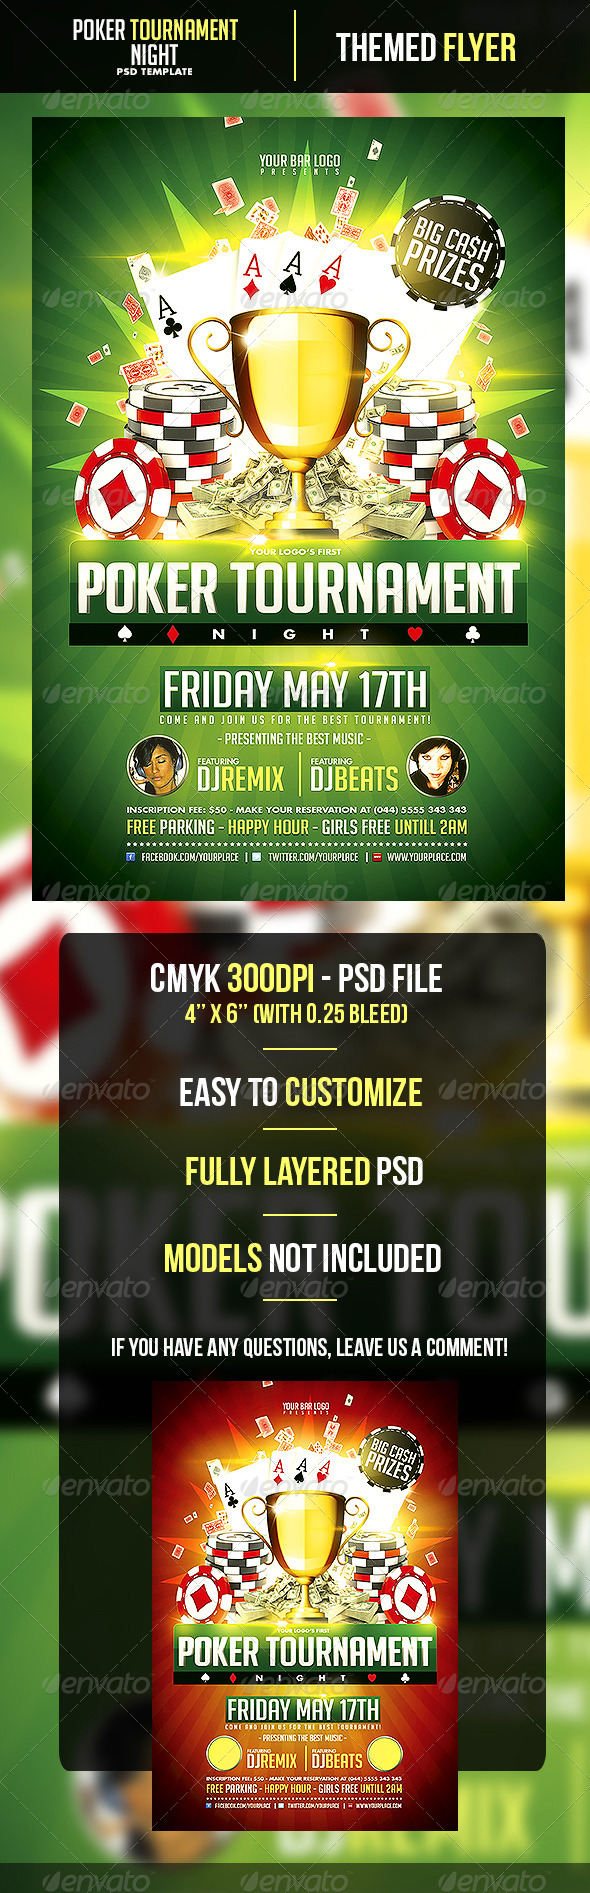 Poker Tournament Night Flyer Template - Events Flyers